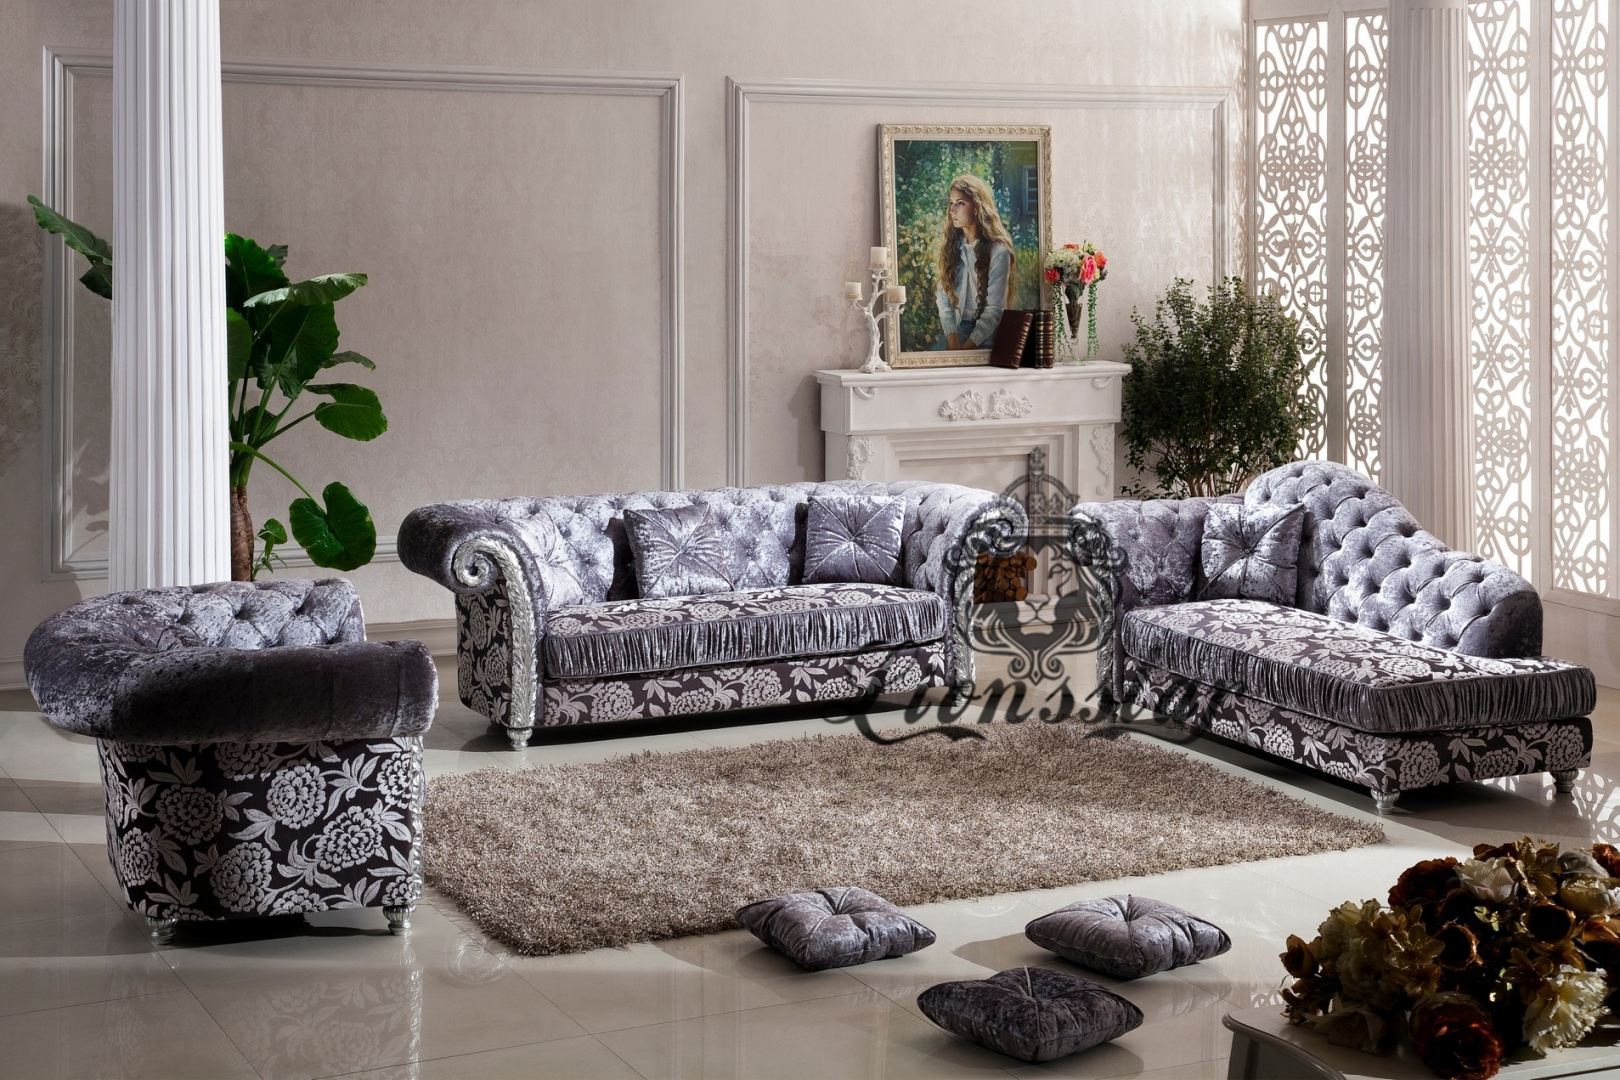 couchgarnitur samtstoff grau lionsstar gmbh. Black Bedroom Furniture Sets. Home Design Ideas